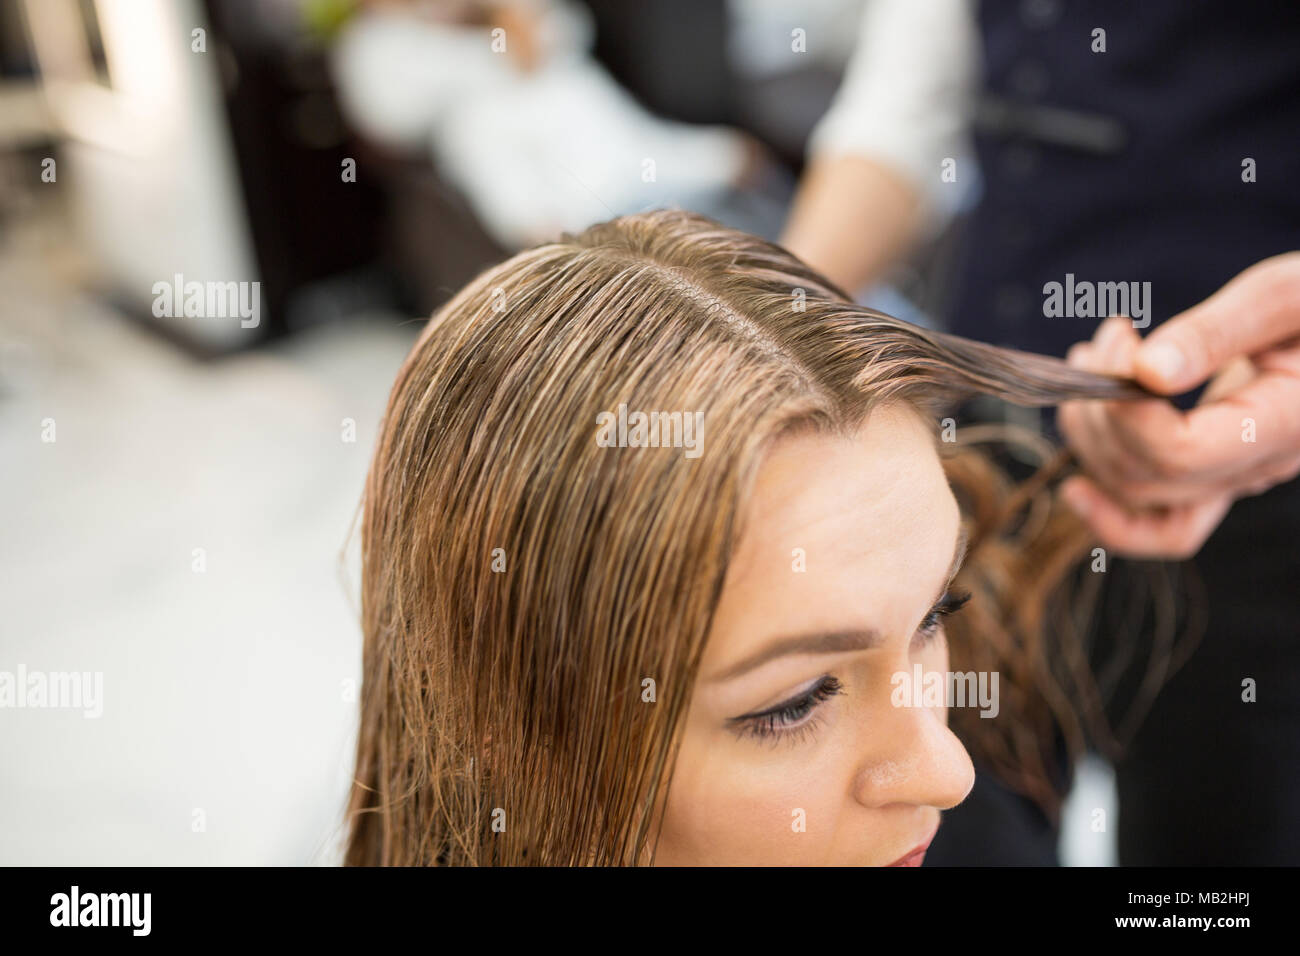 Cropped portrait of hairdresser holding client hair strand - Stock Image